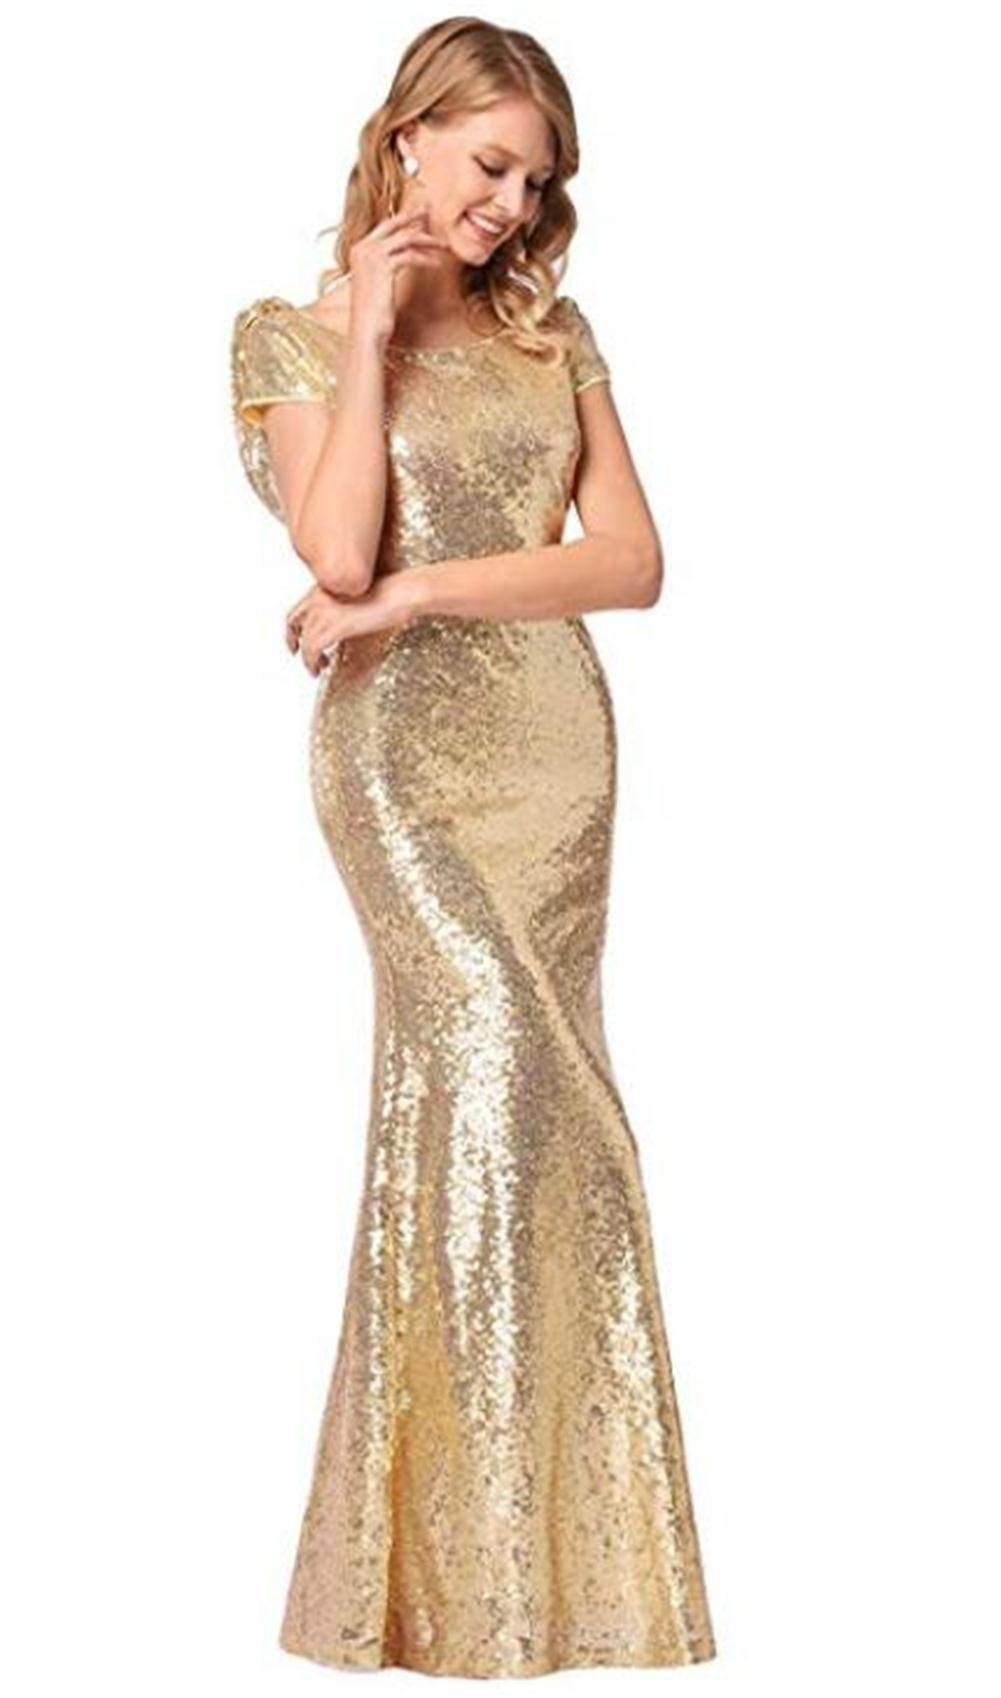 Luyeiand Rose Gold Sequin Bridesmaid Dresses Mermaid Sparkly Backless Wedding Party Gown,Gold,Large